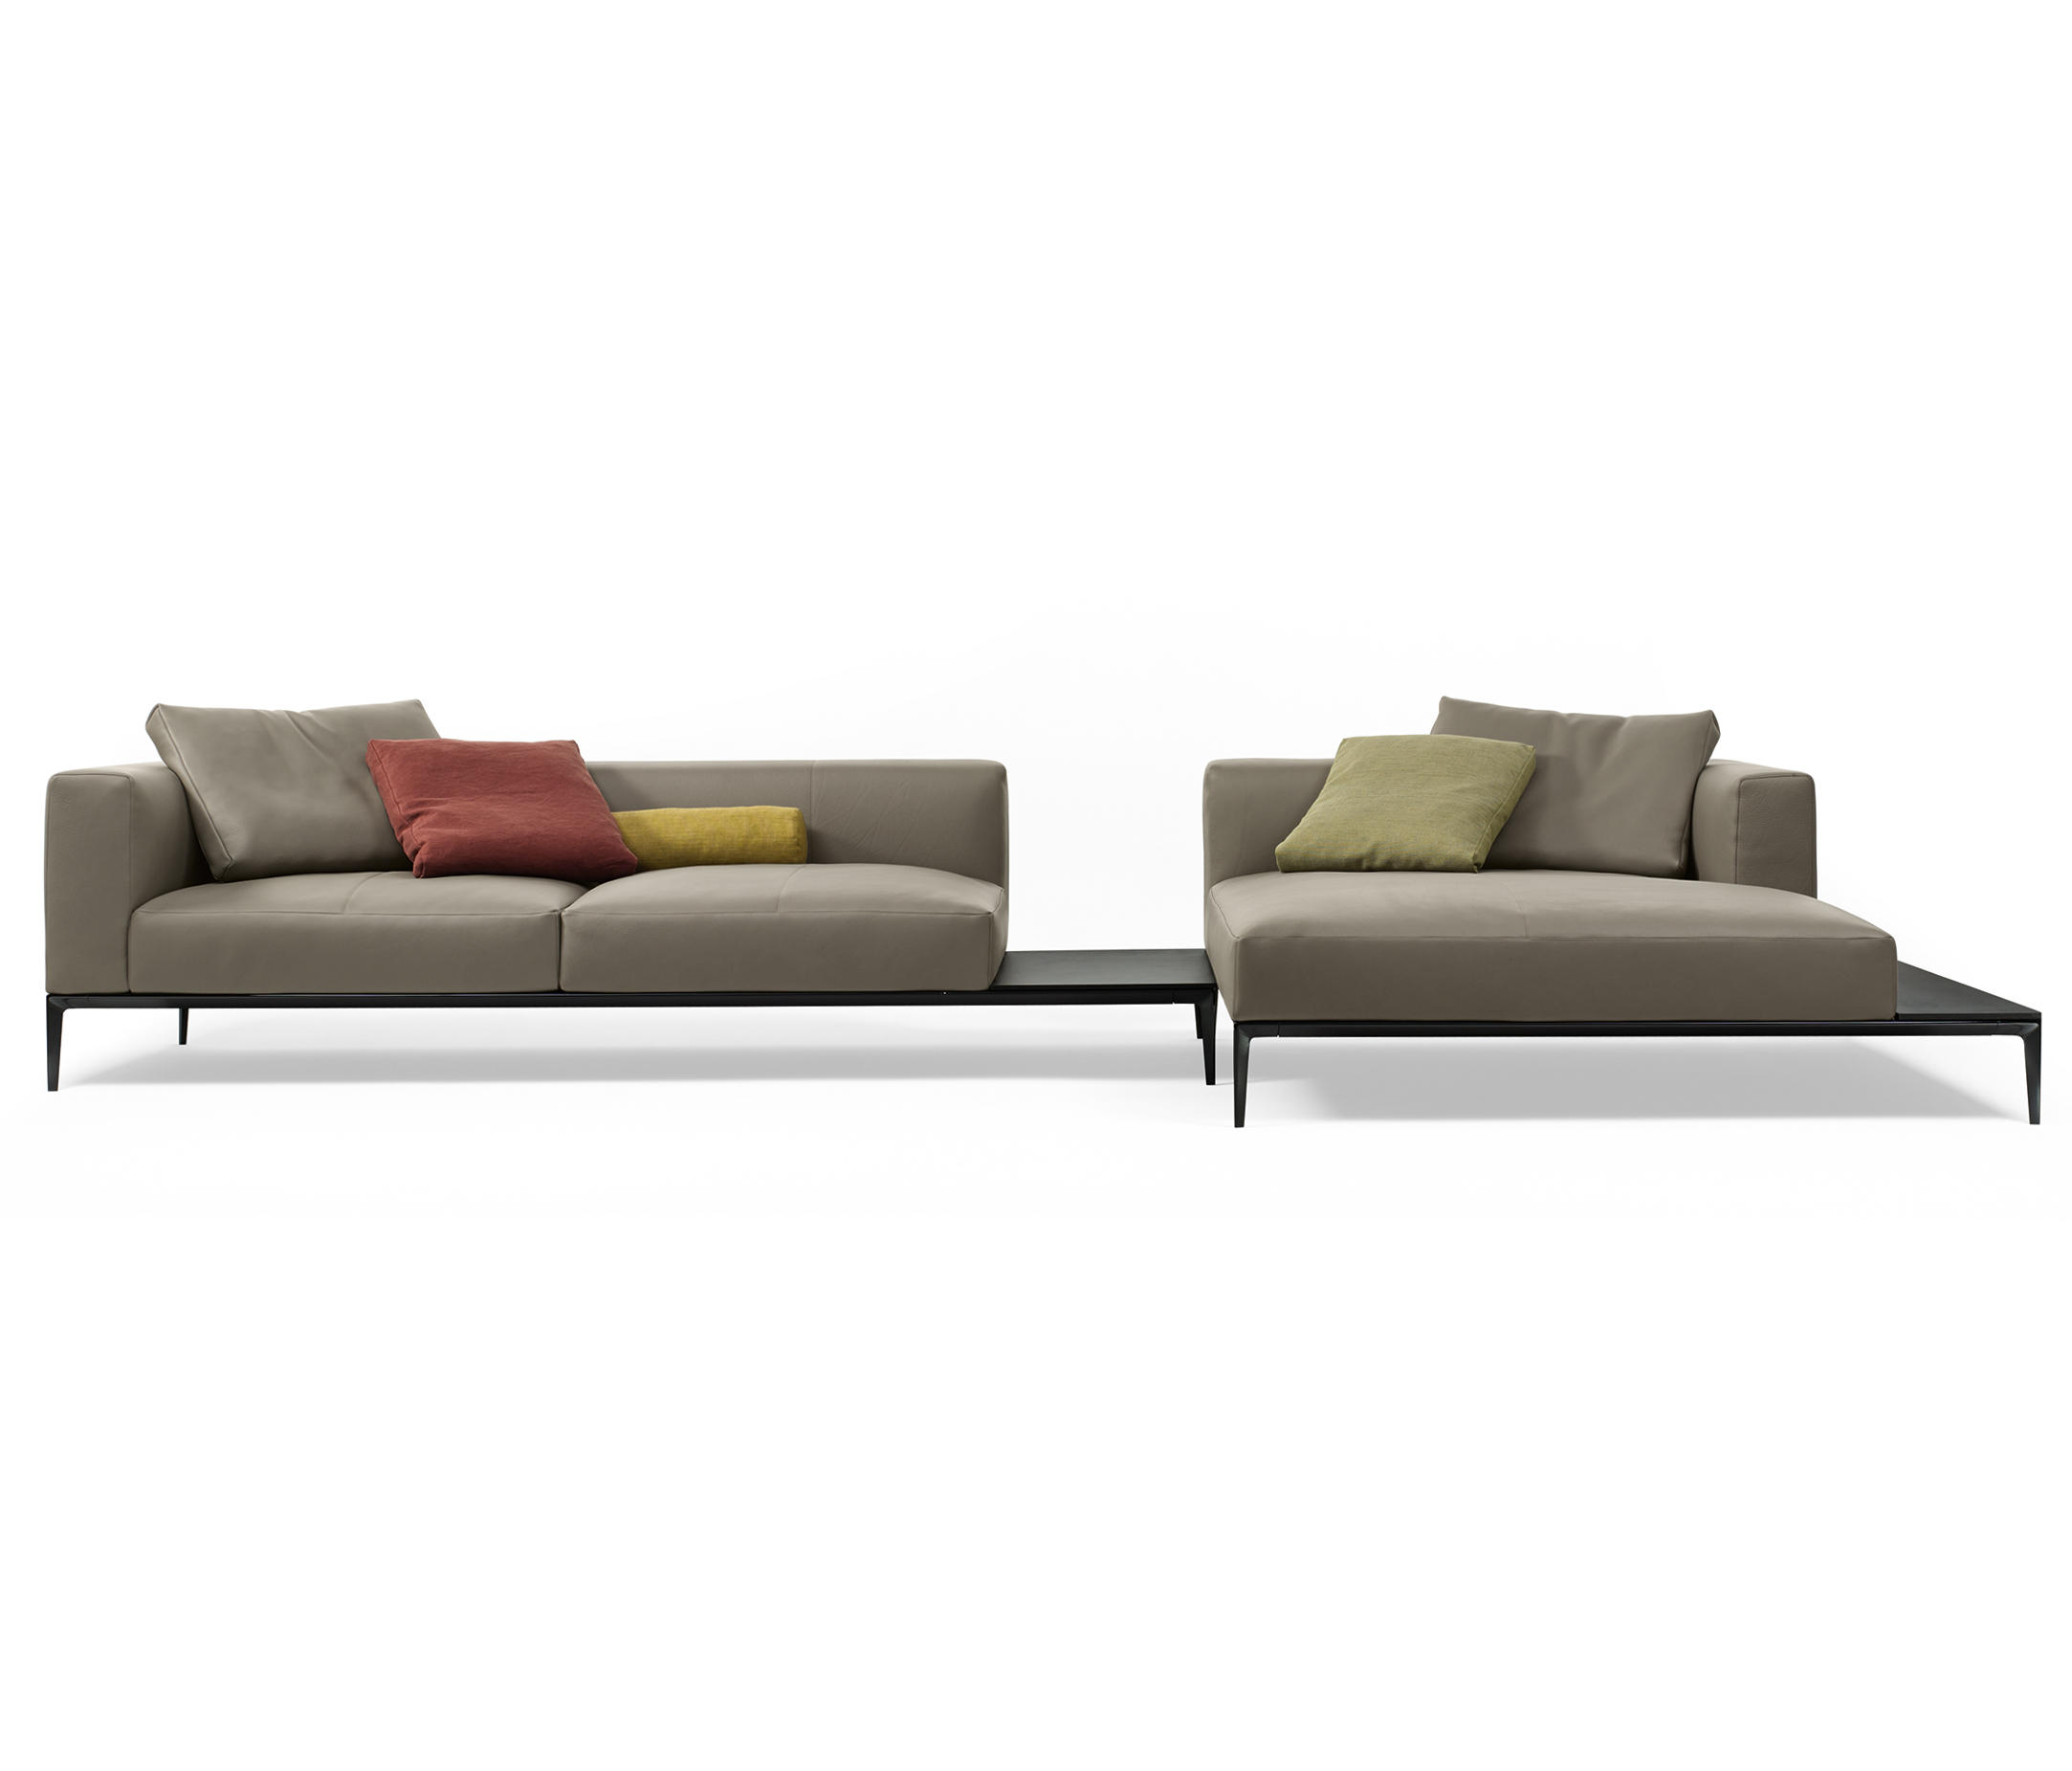 jaan living sofa modular sofa systems from walter knoll. Black Bedroom Furniture Sets. Home Design Ideas